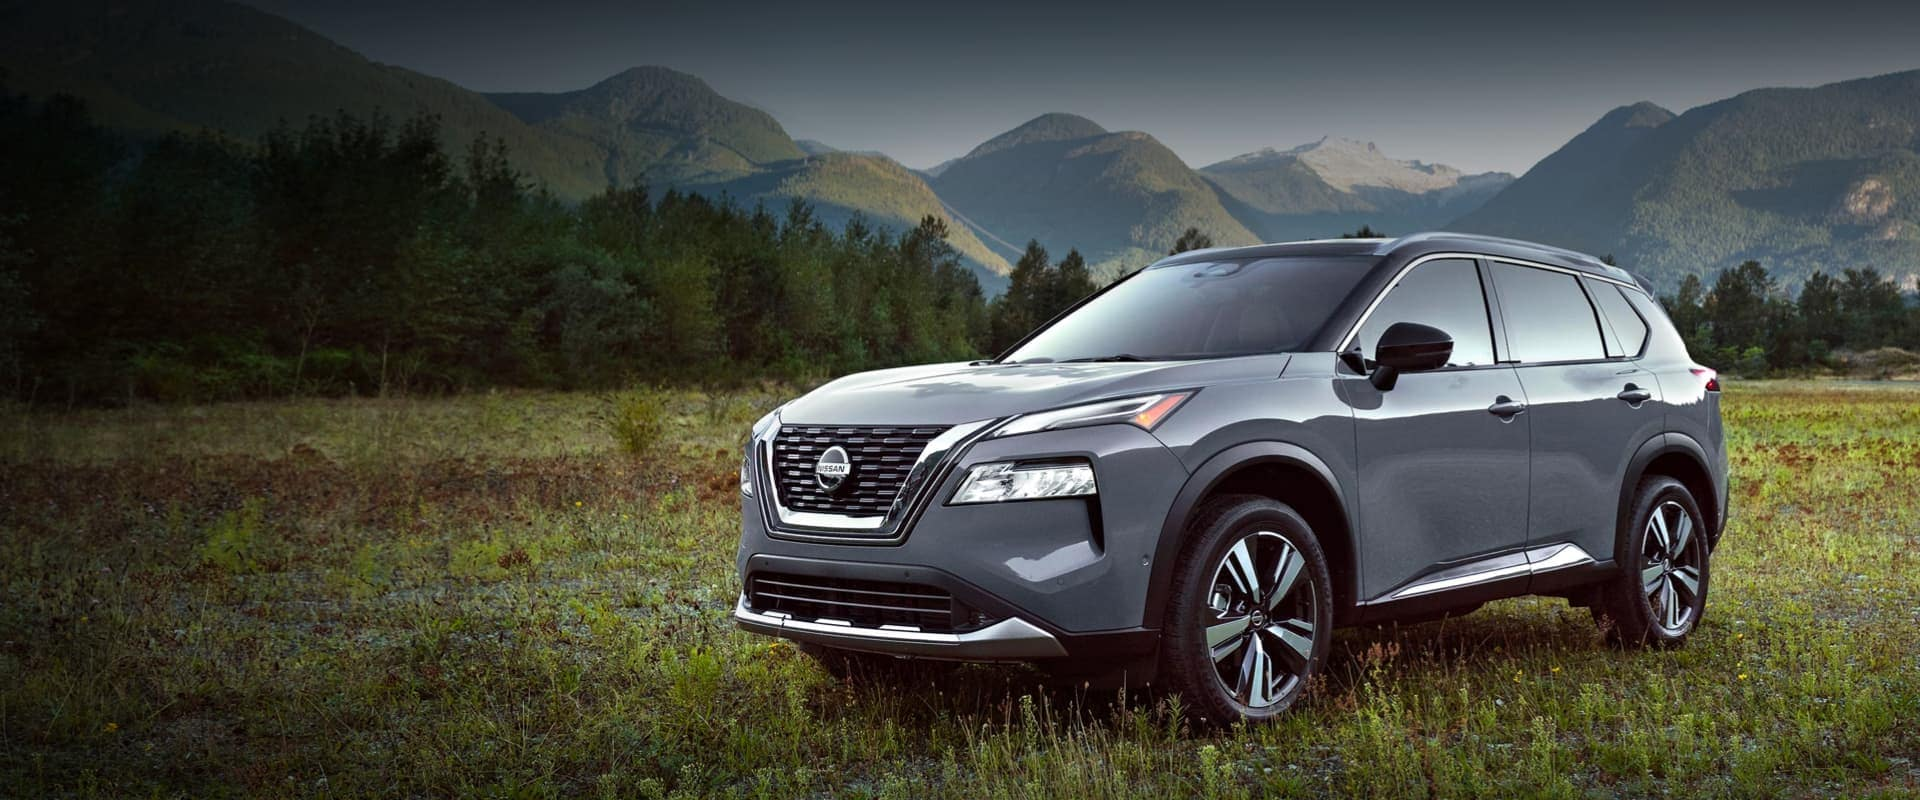 Light gray Nissan crossover in a field with mountains in the background